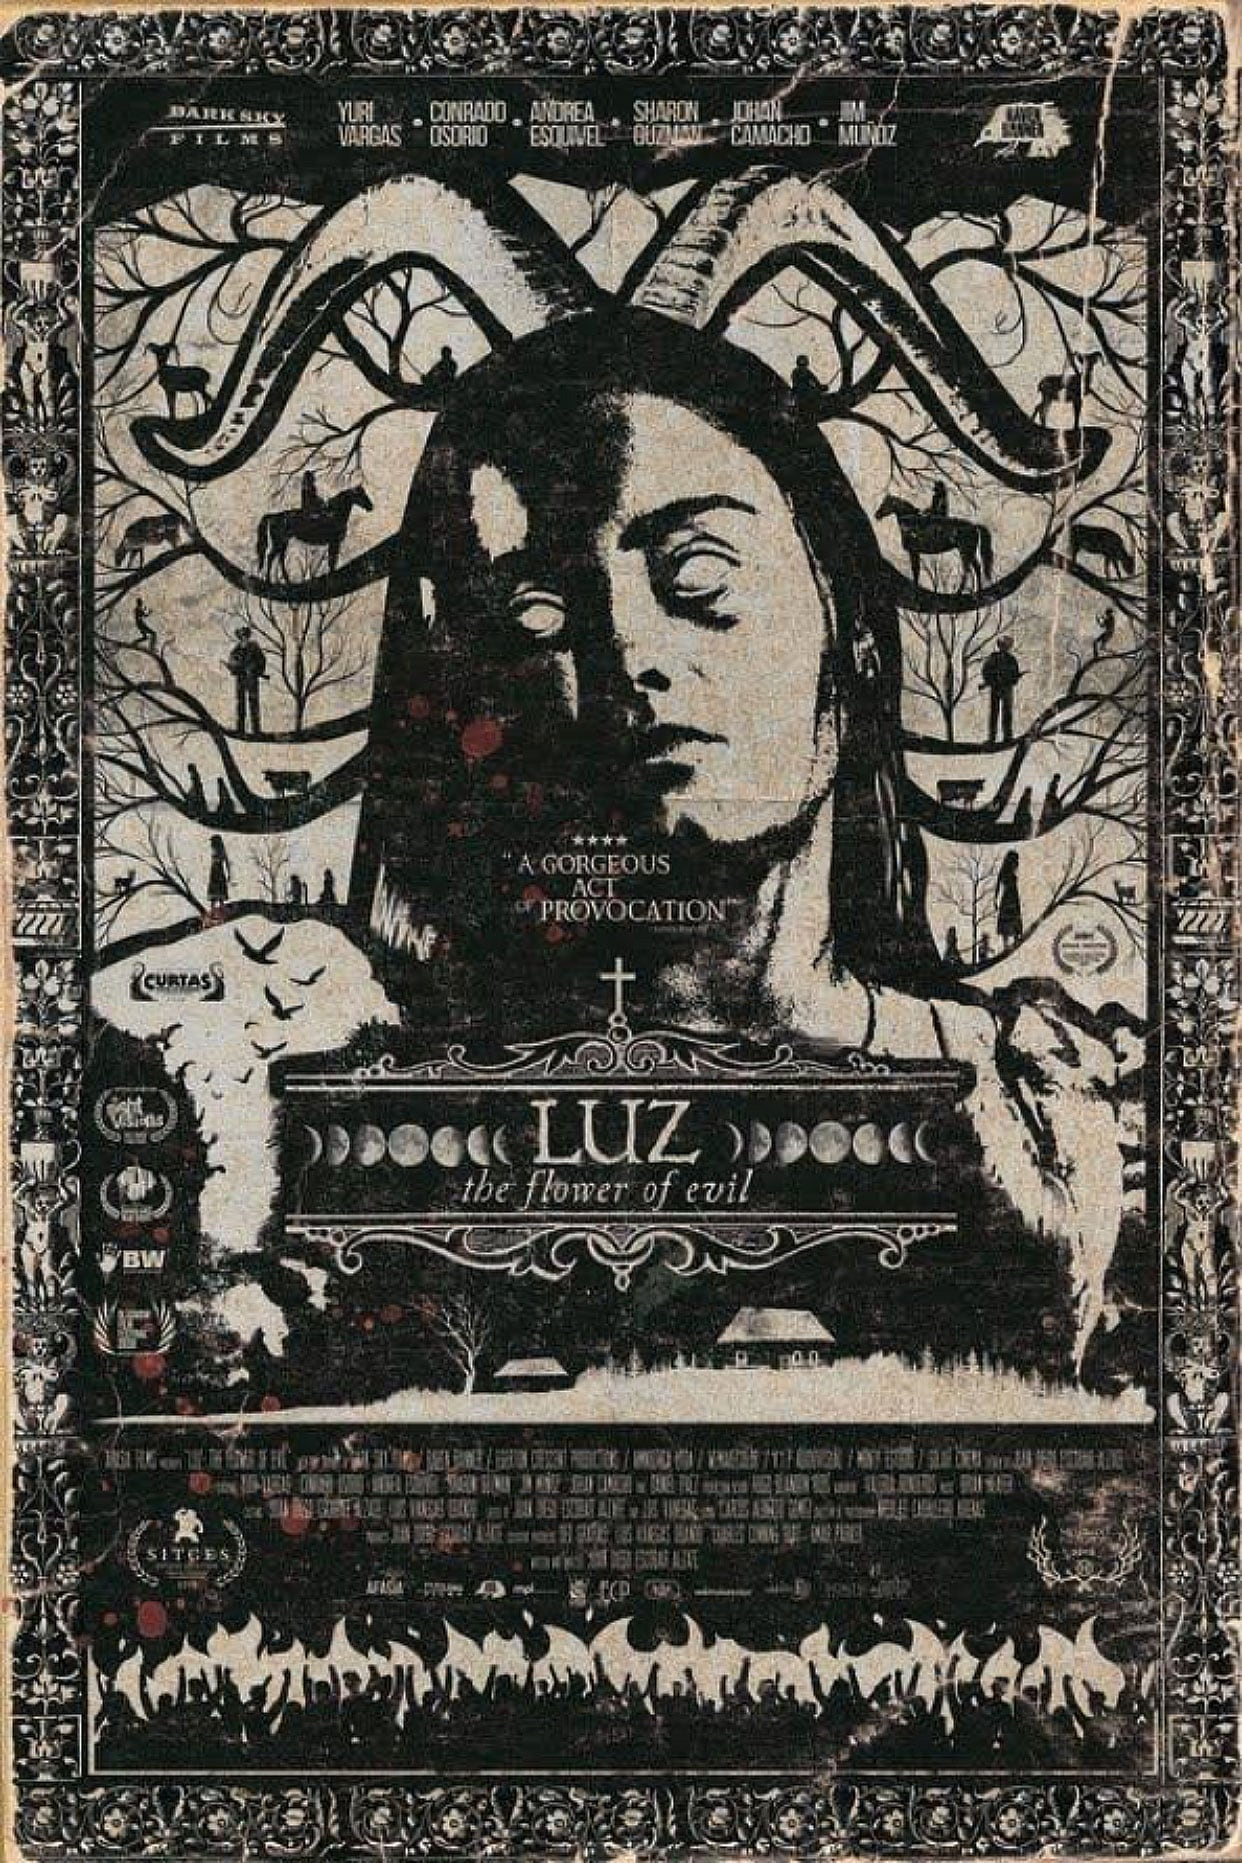 LUZ-THE FLOWER OF EVIL